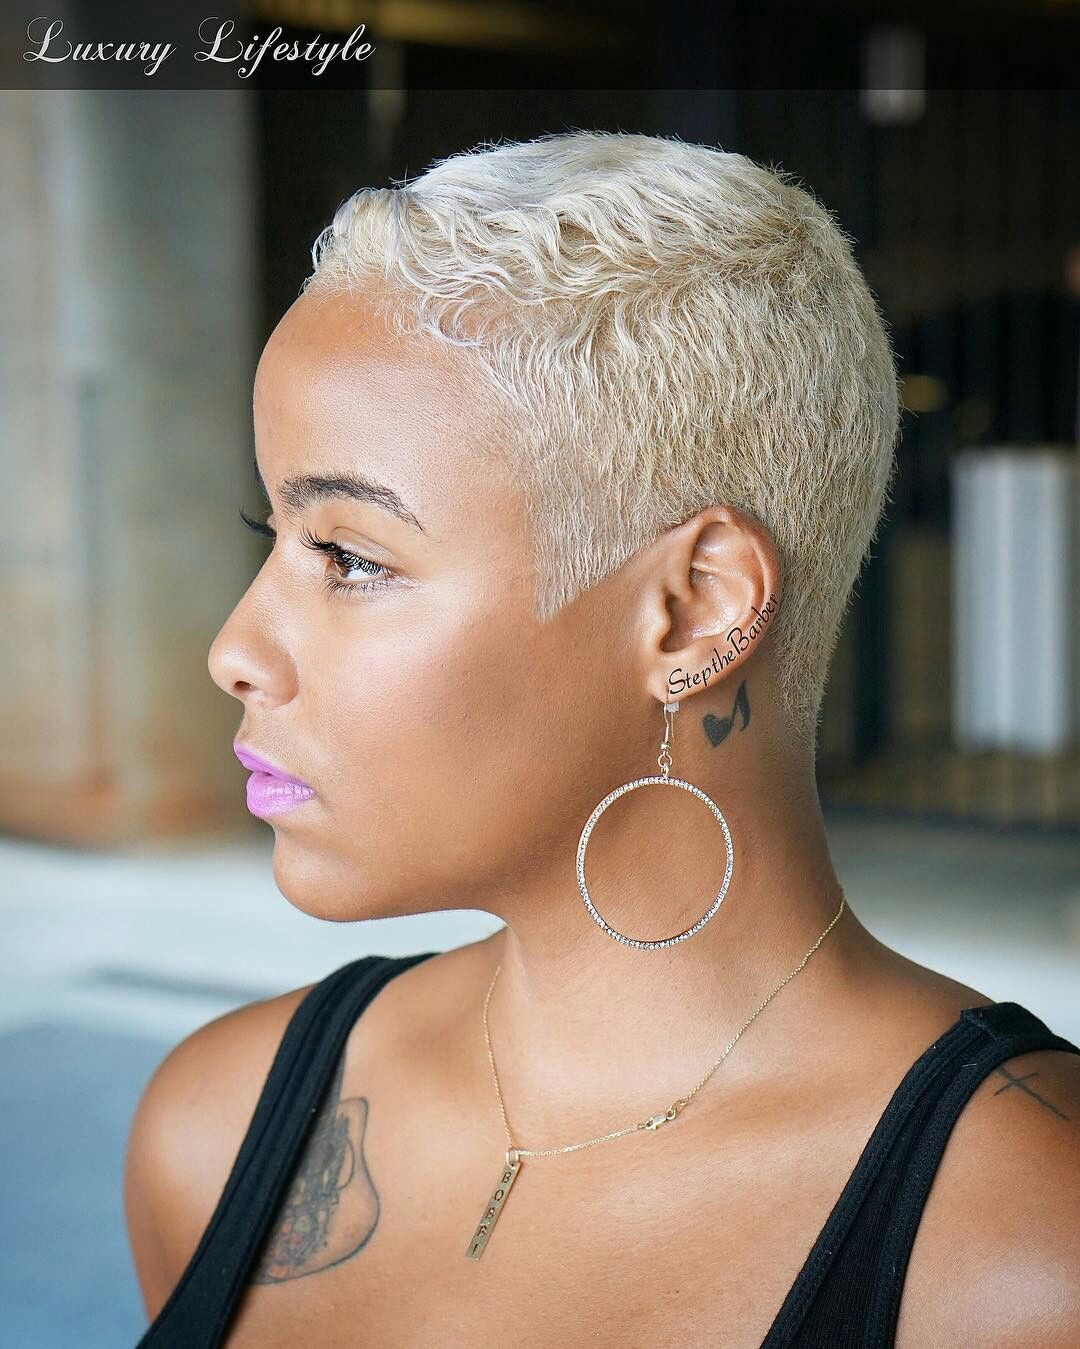 I wish I could pull this off. So beautiful 😩😩😩😩😍😍😍  Short